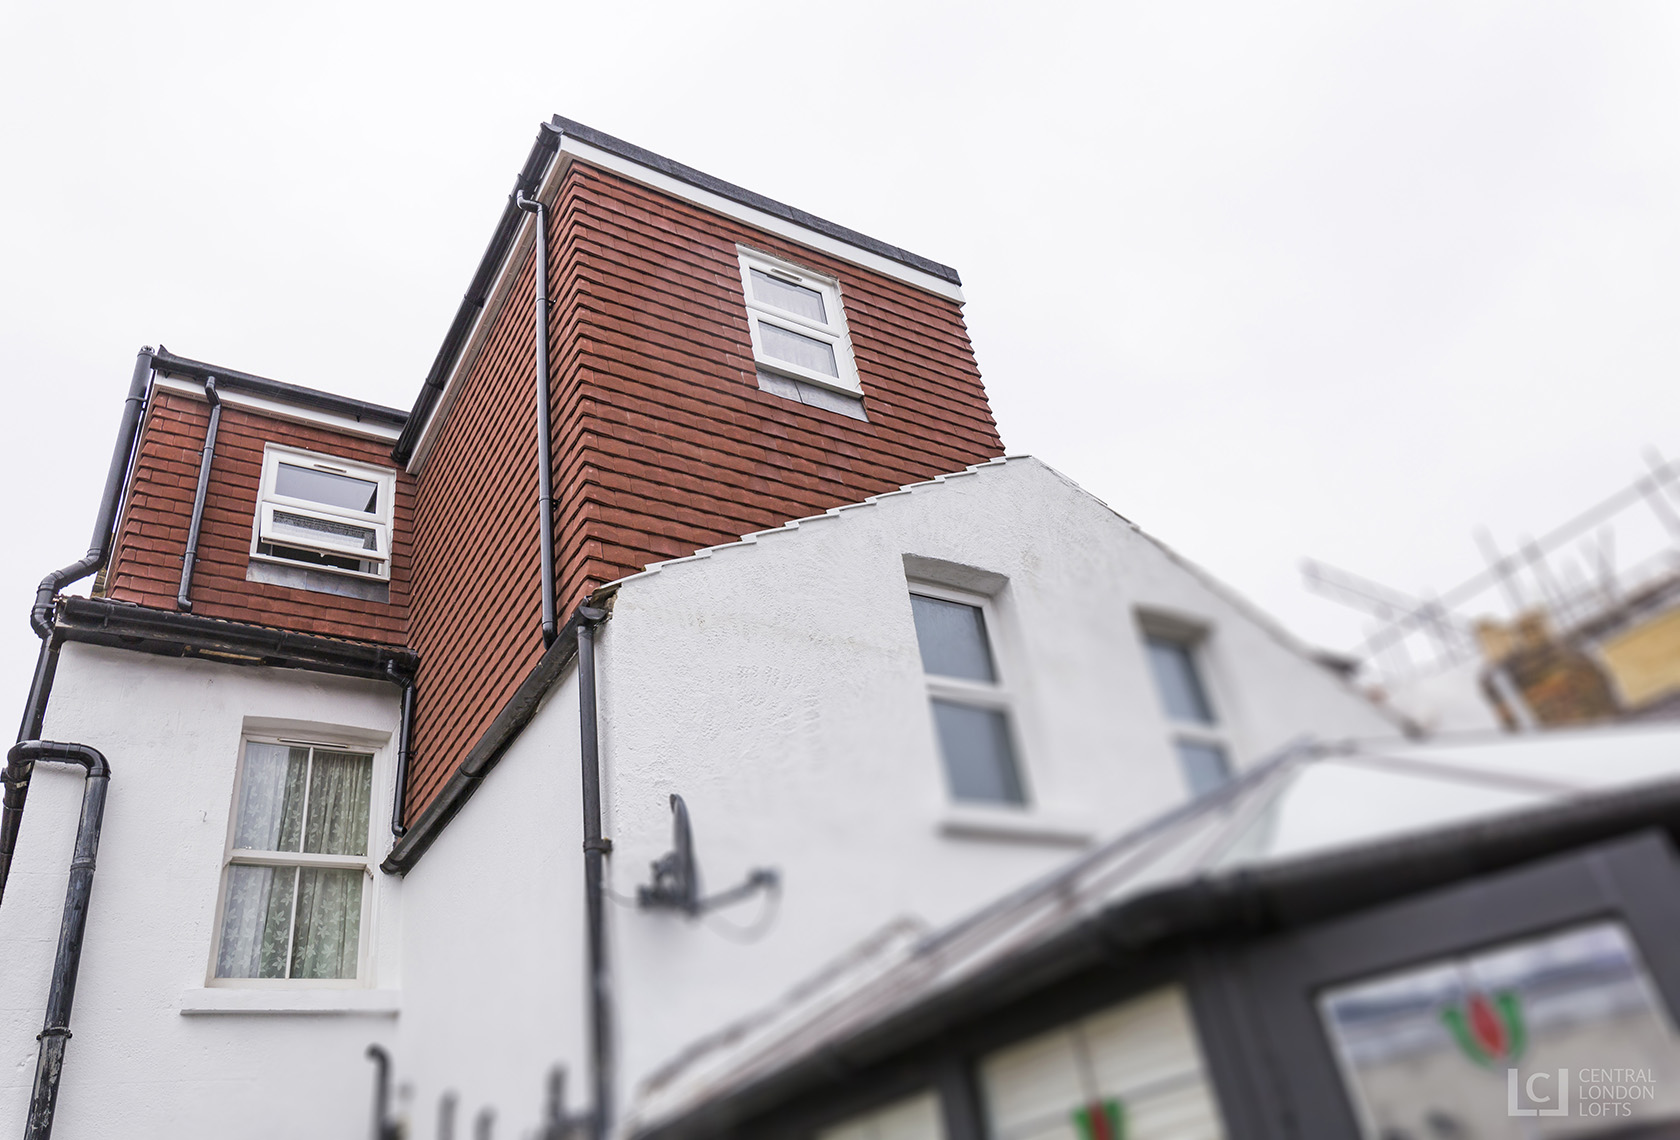 4 SOMERVILLE ROAD Loft Conversion 2